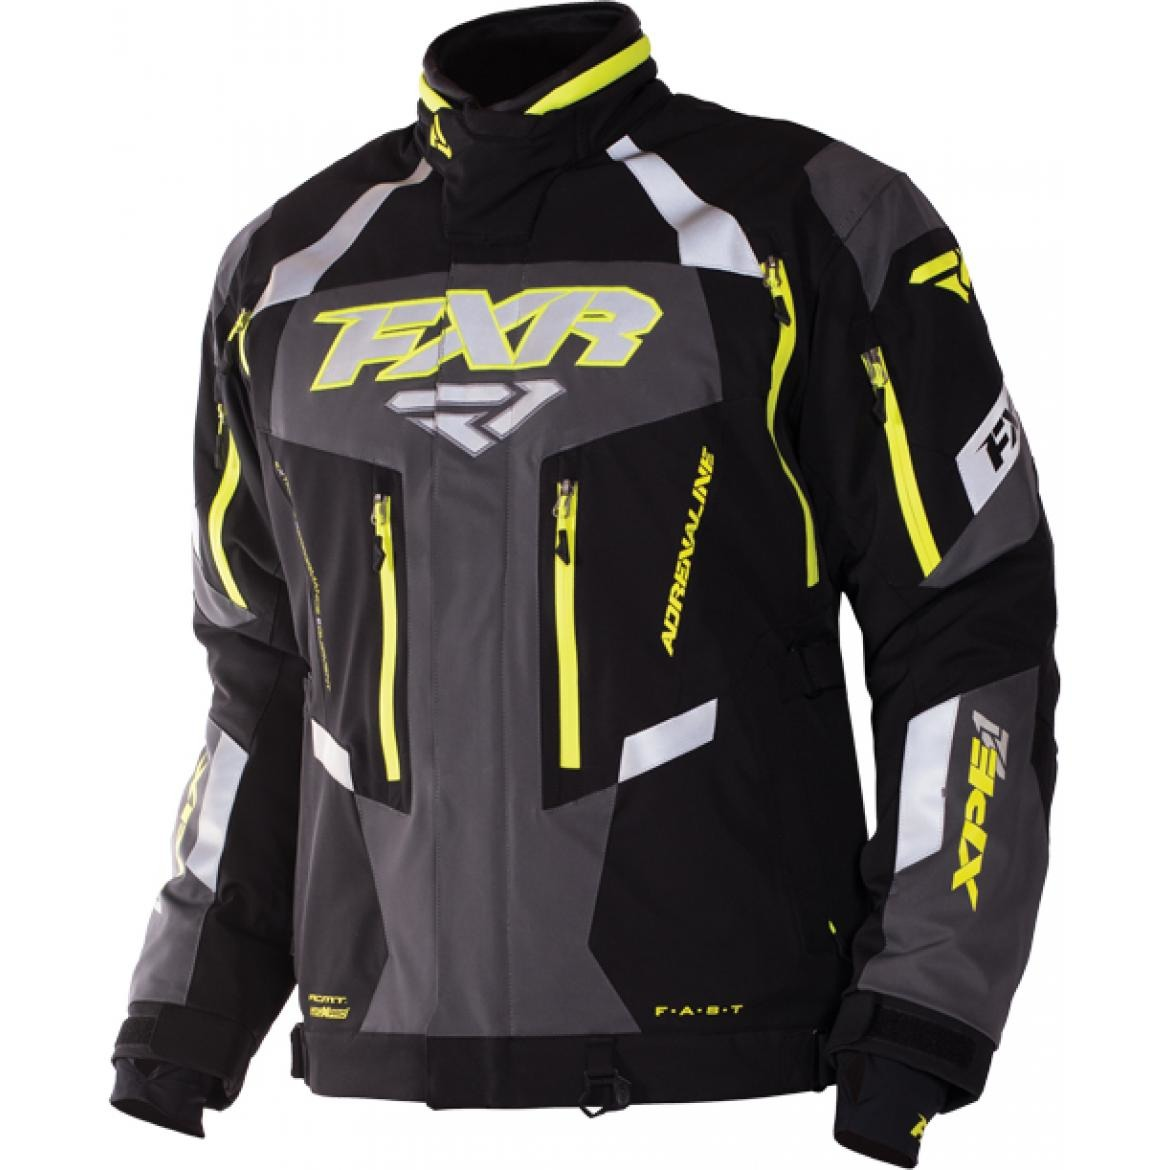 Adrenaline XPE 3-in-1 Jacket Kaelteindex 4-10